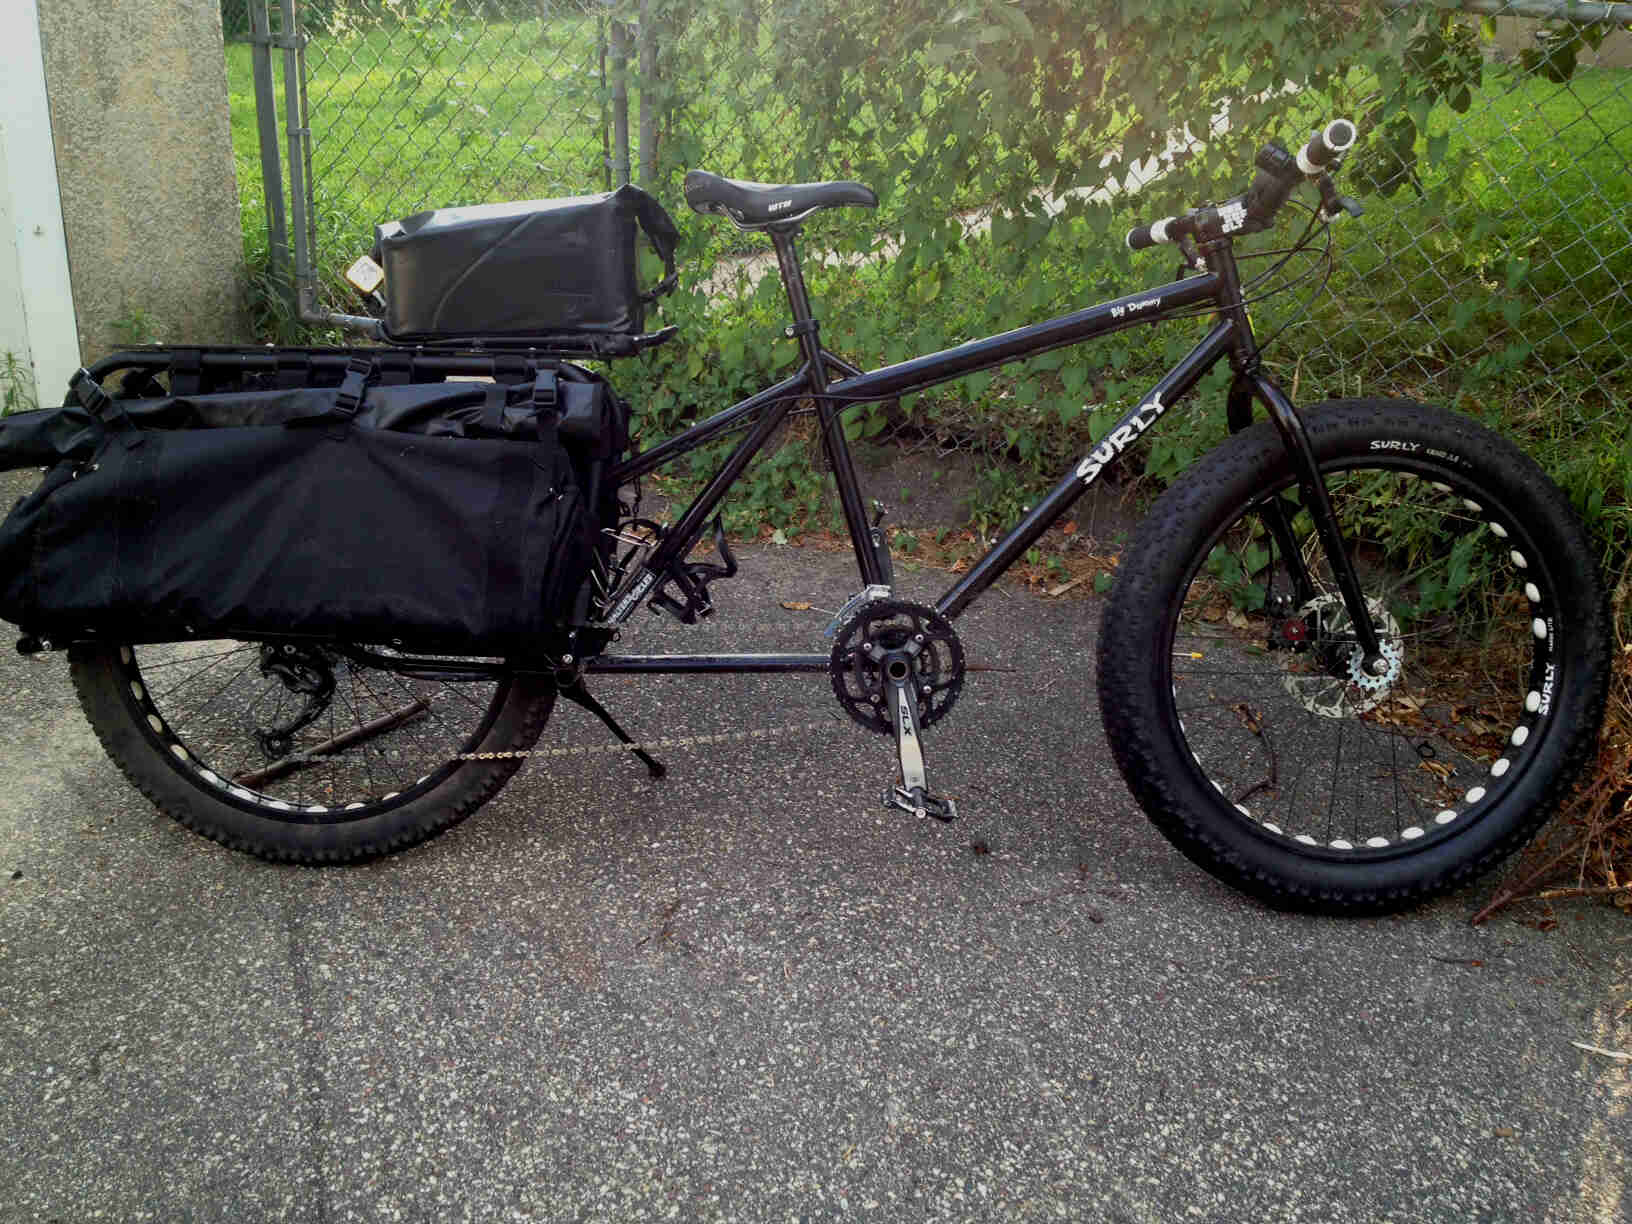 Right side view of a black Surly Big Dummy bike with a fat front wheel, on pavement, with a chain link fence behind